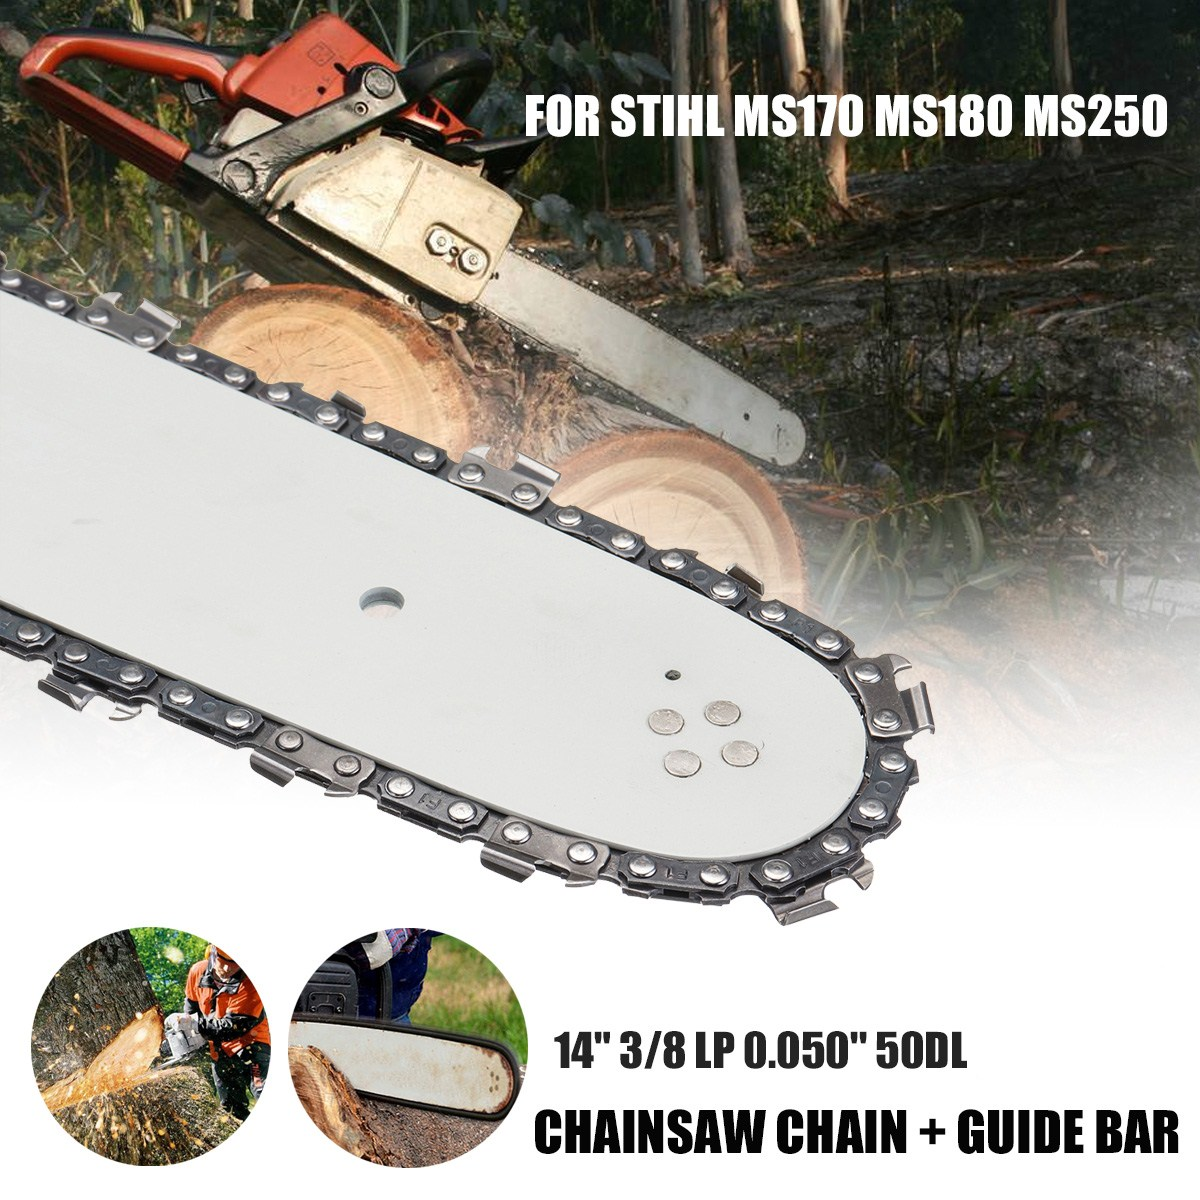 14 Chain Saw Guide Bar for STIHL MS170 MS180 MS250 Universal Home Chains 3/8 LP 50DL Bar Tool for Wood Cutting Saw Chain Parts 4pcs 20 chainsaw guide bar with saw chain 3 8 72dl 63 for stihl ms290 ms291 310 340 360 361 361c power tools accessories